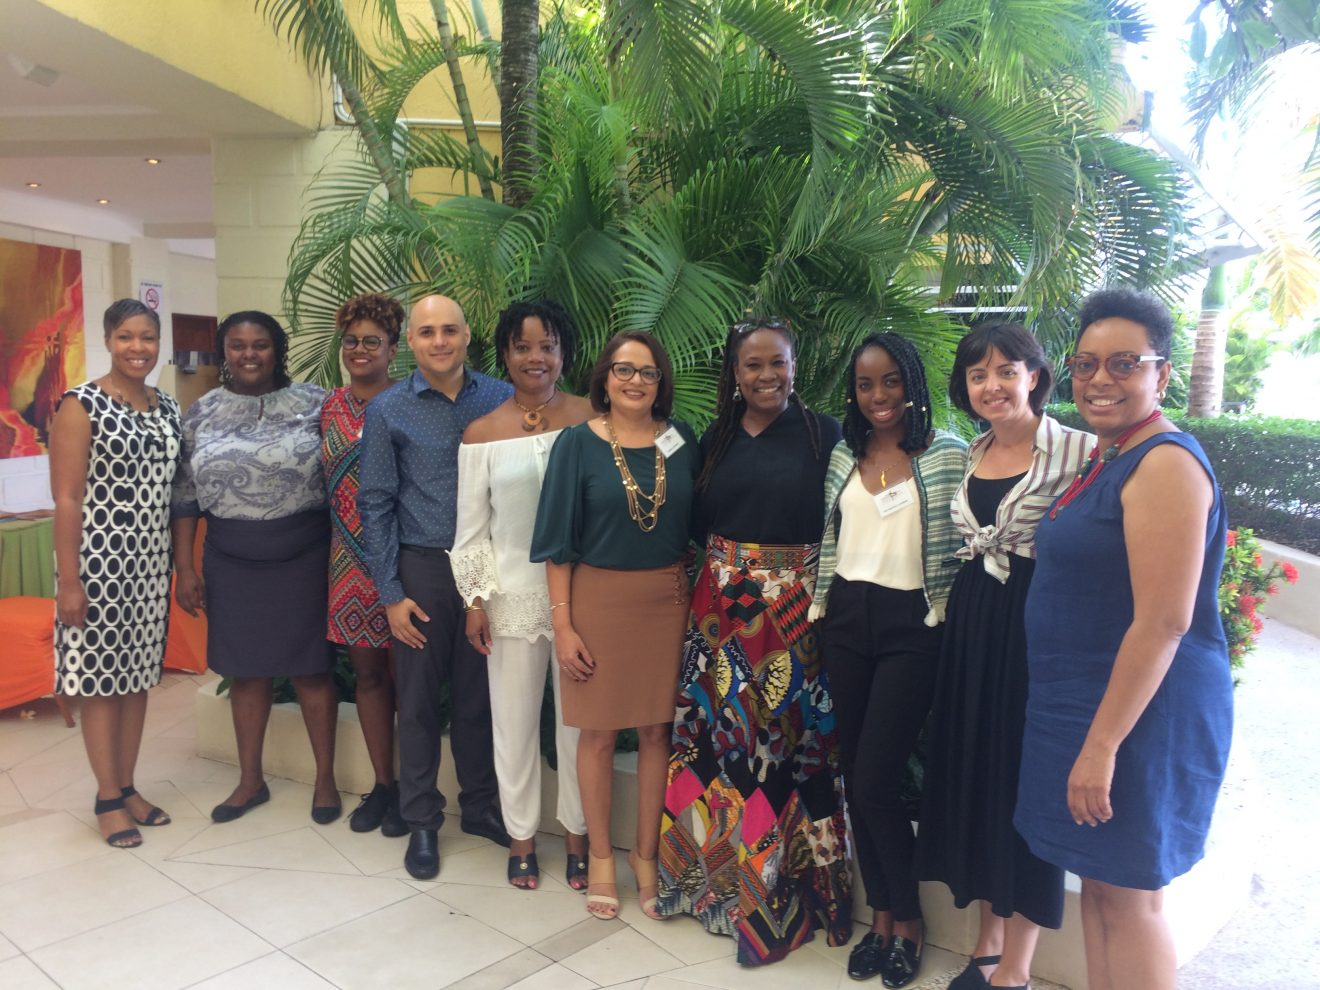 MAC 2018 AGM Travel Fellows